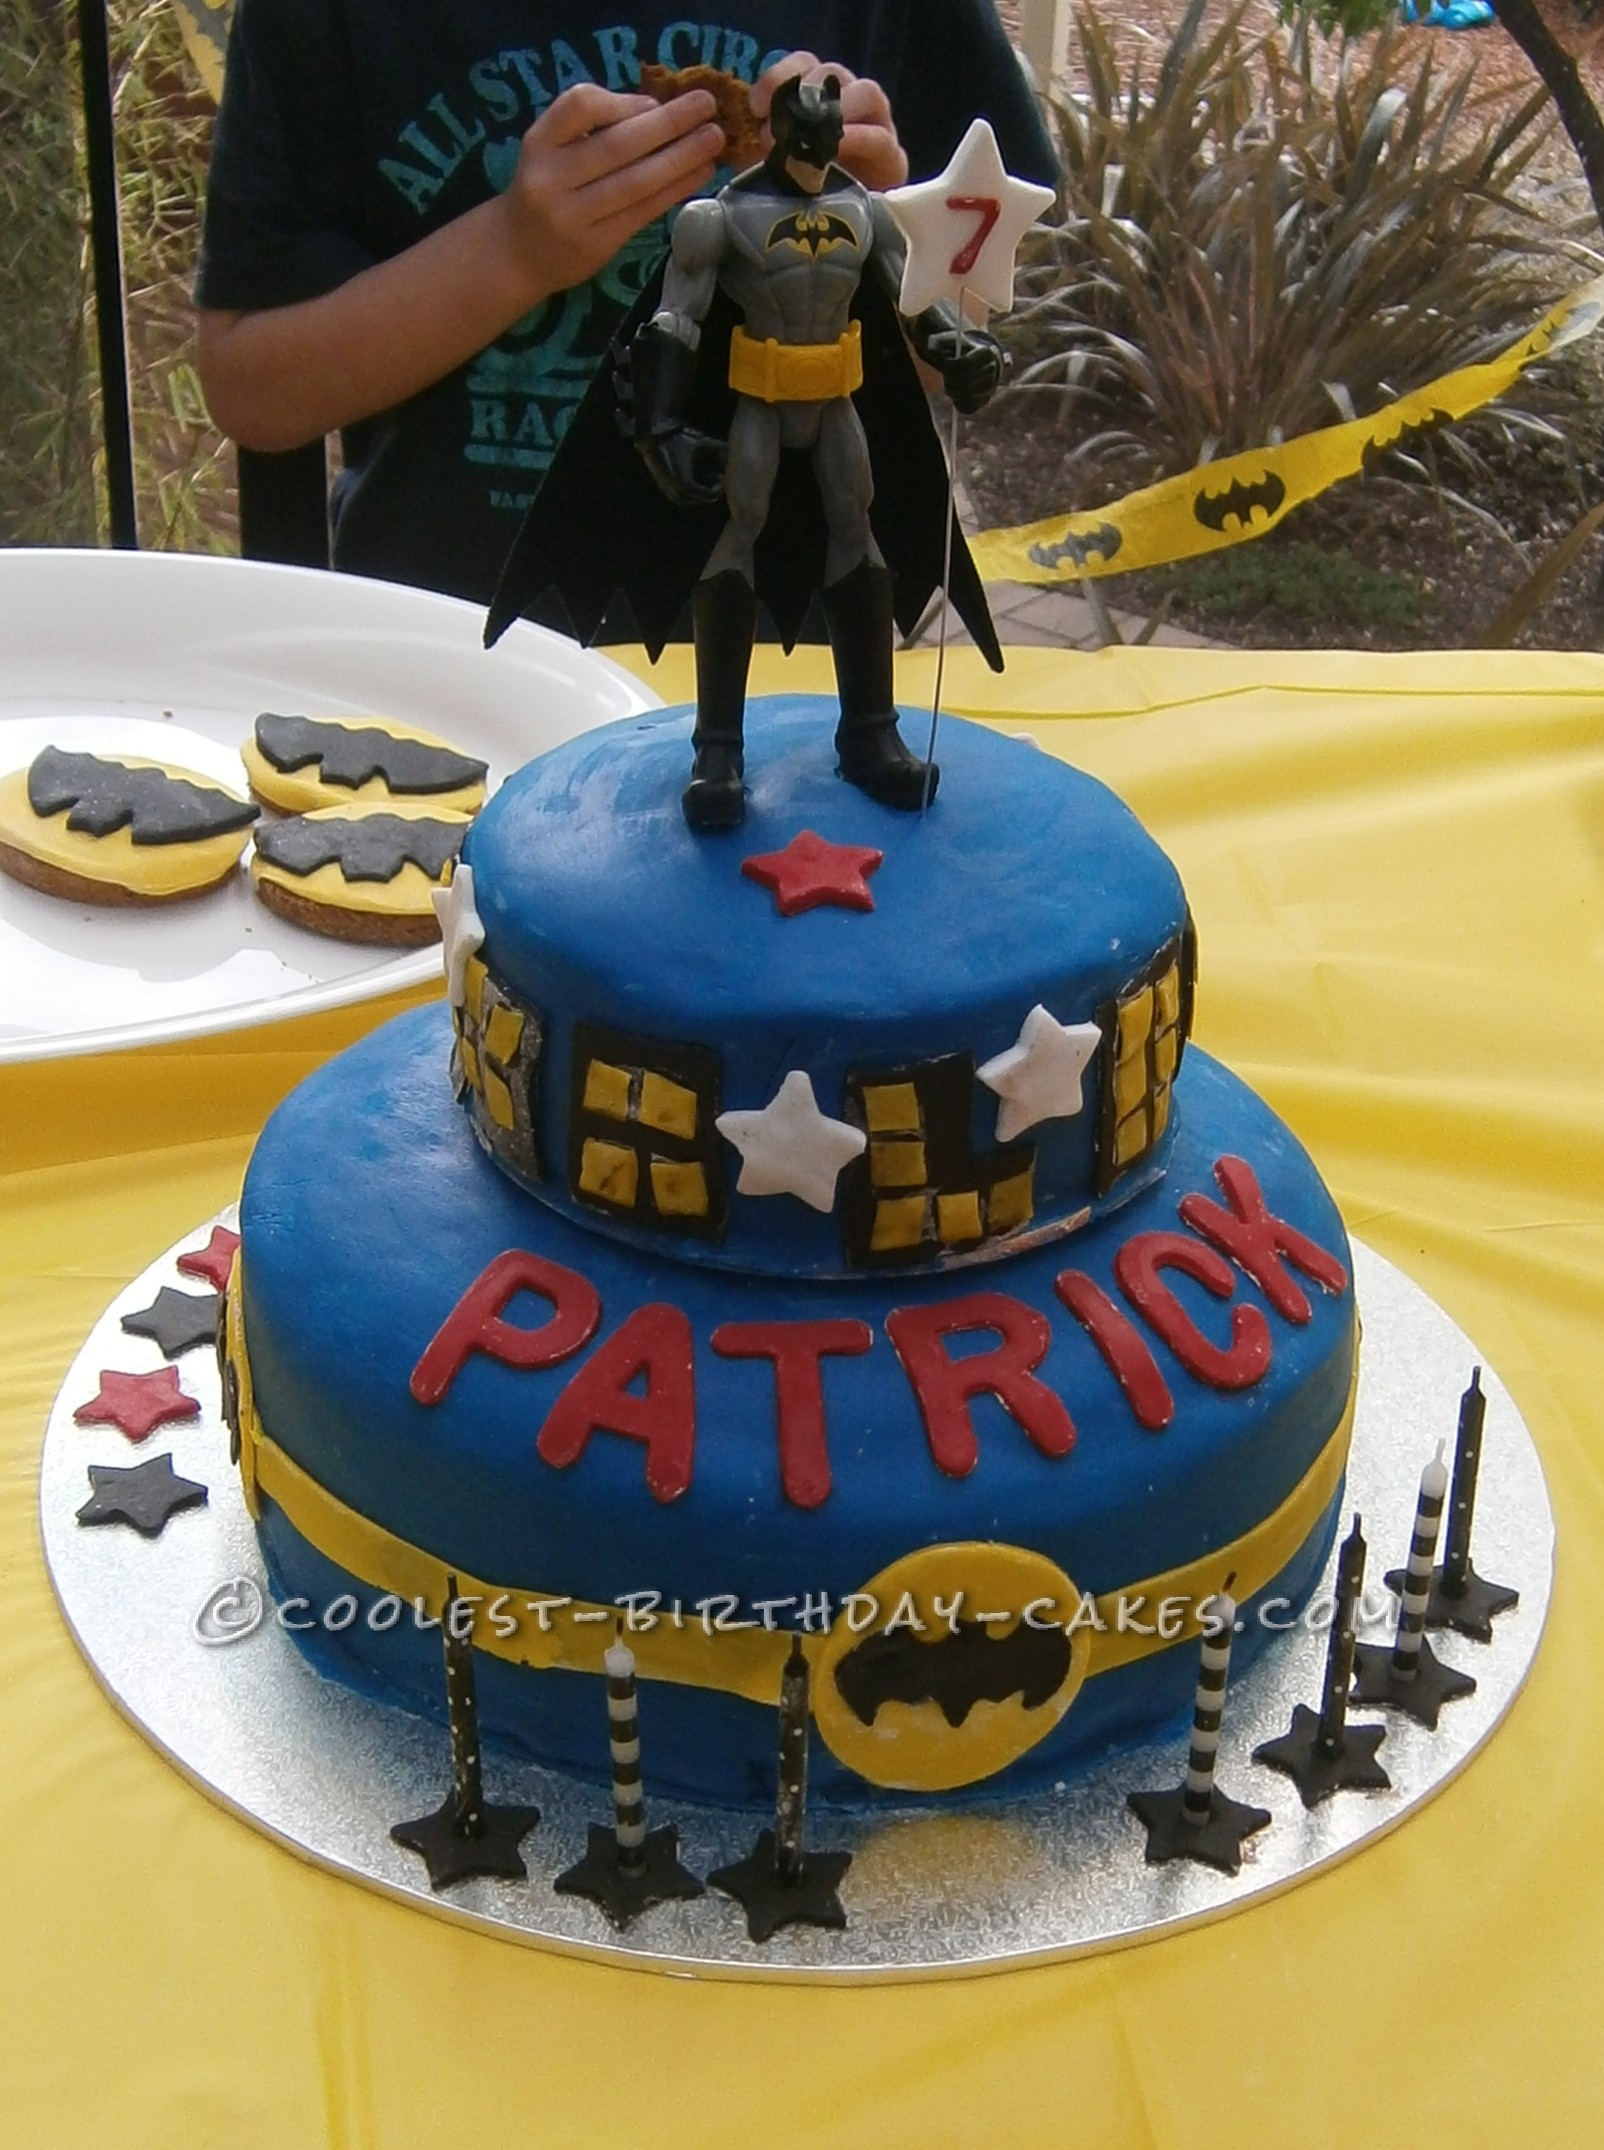 This Batman Cake Was One Of The Easiest Cakes I Have Made So Far My Greatest Tips Are To Buy Mix For And Precoloured Fondant